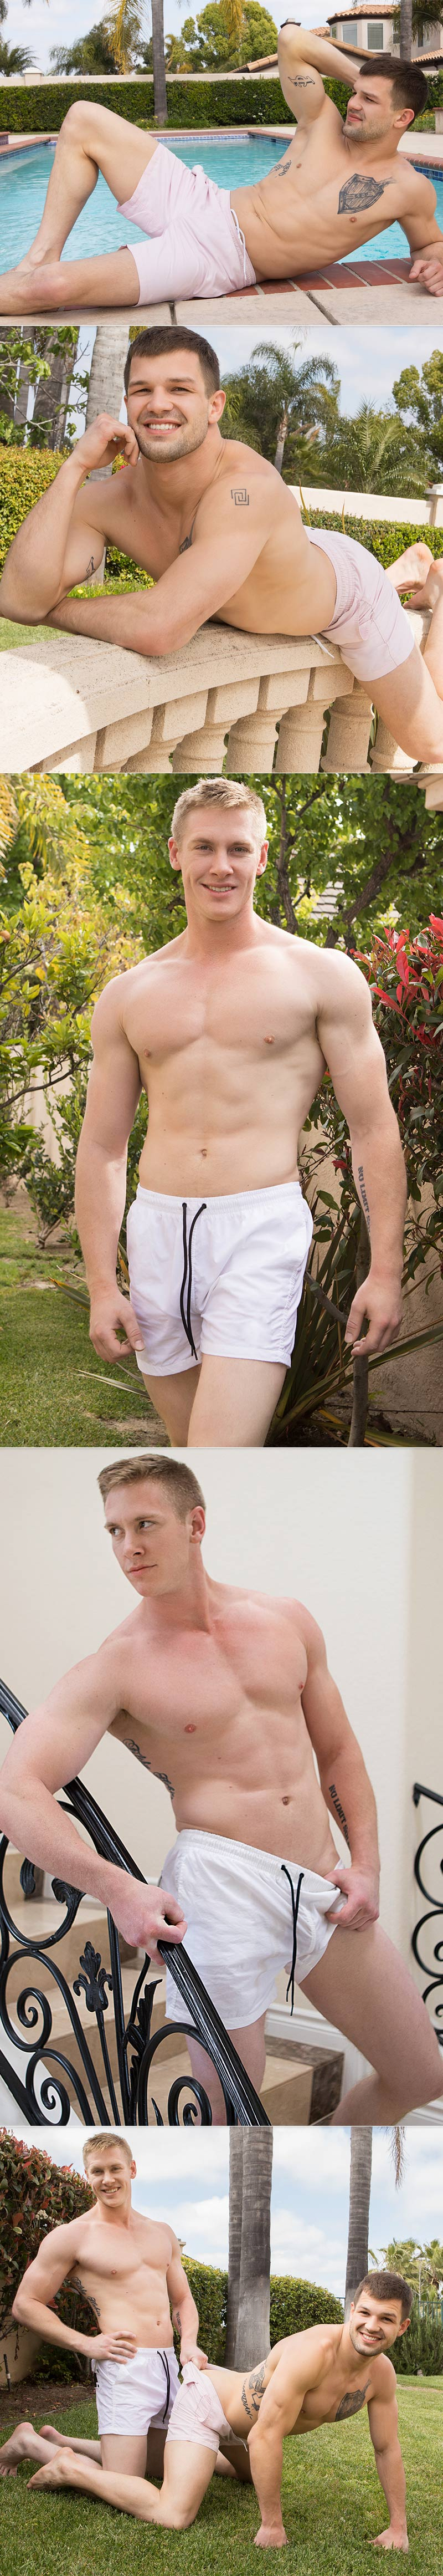 Jax Barebacks Brysen at SeanCody